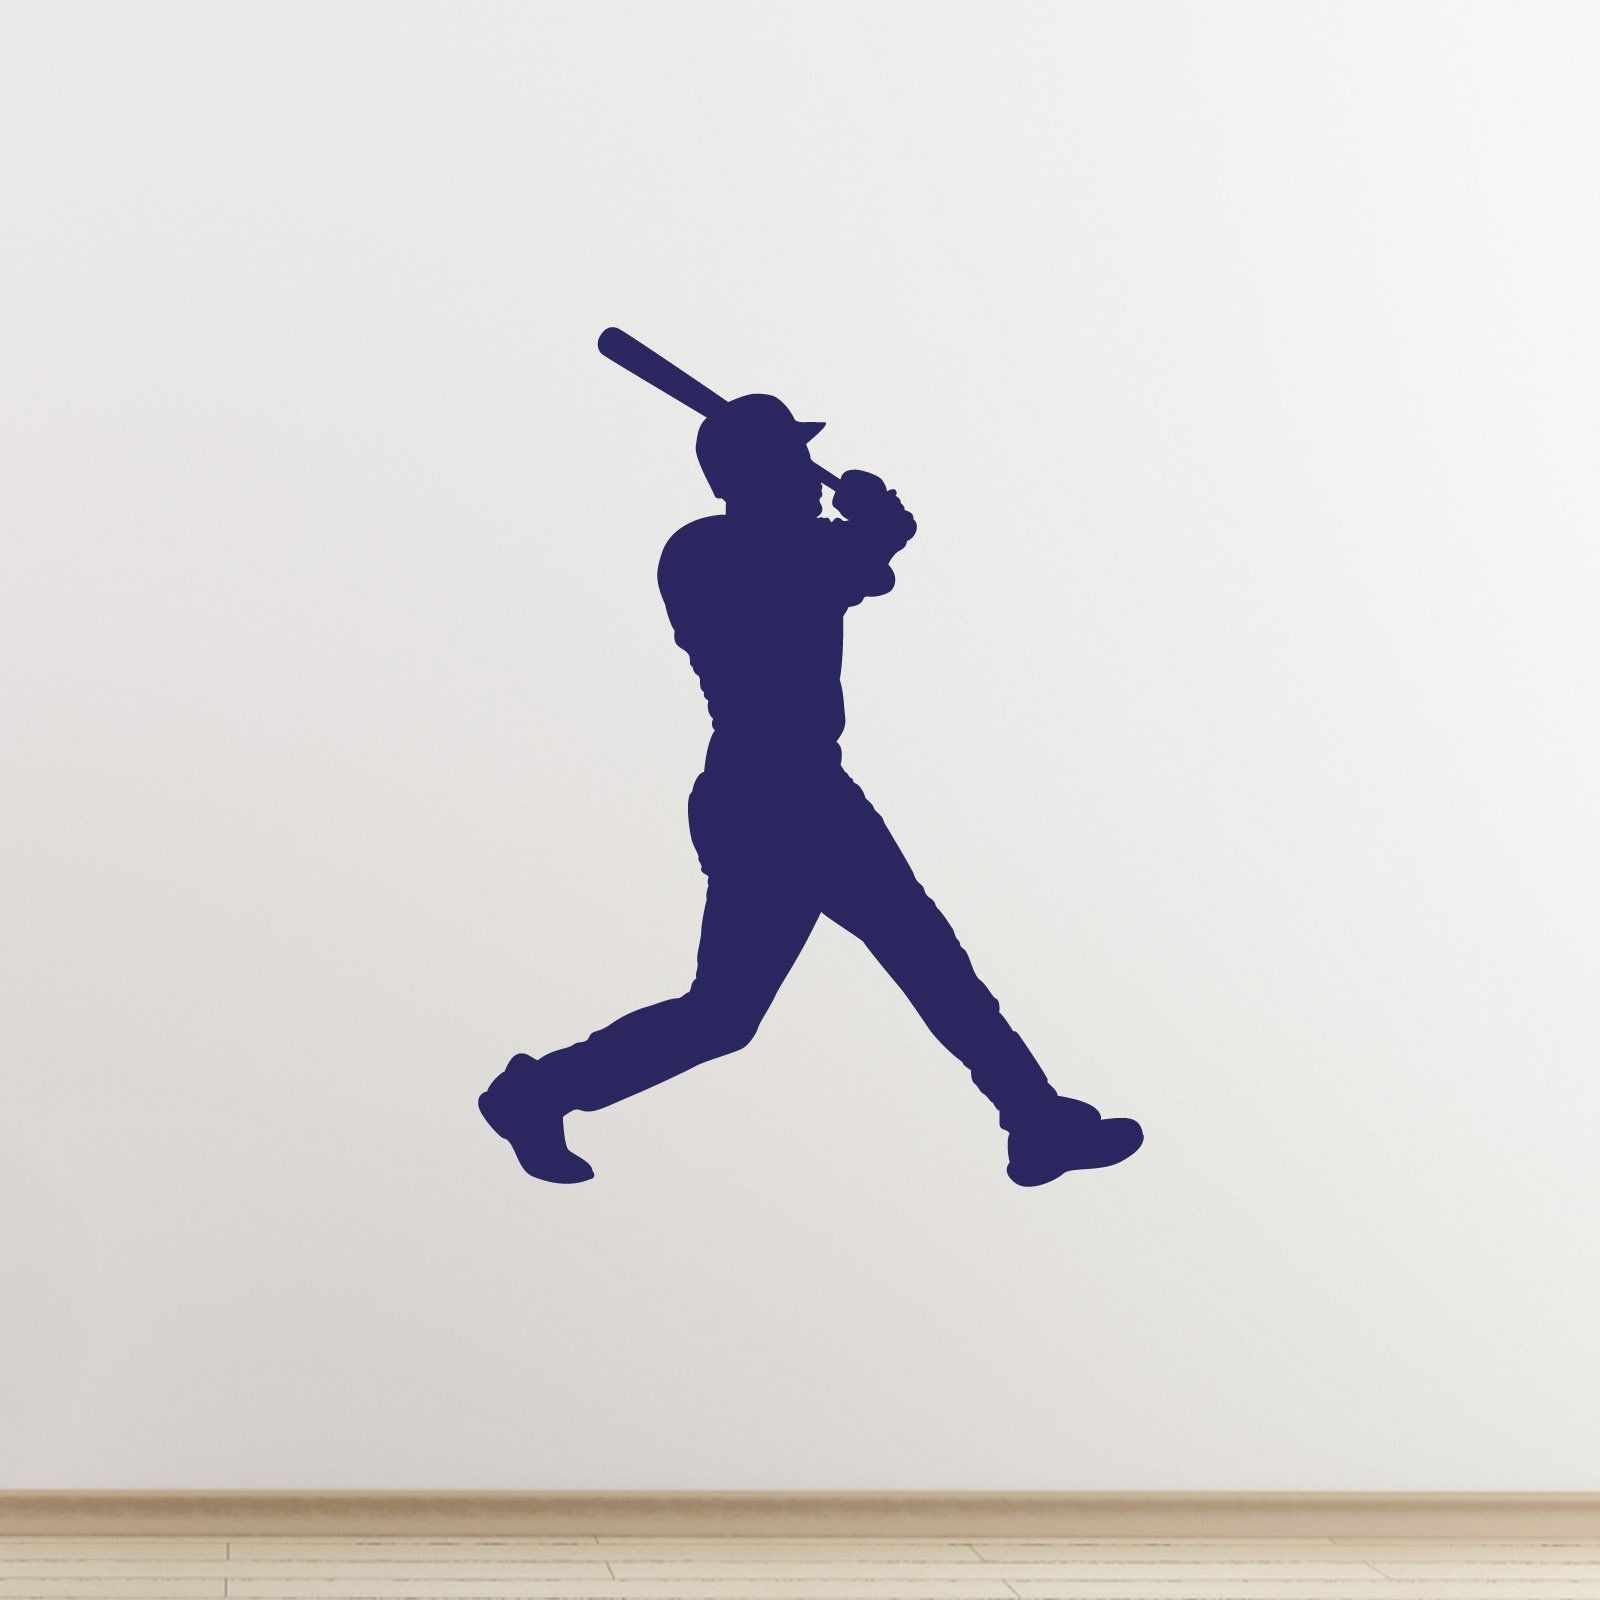 Baseball Player Wall Decal / Sticker - Hitter - Sports Silhouette Wall Art Amazon.co.uk DIY u0026 Tools  sc 1 st  Pinterest : sports silhouette wall decals - www.pureclipart.com